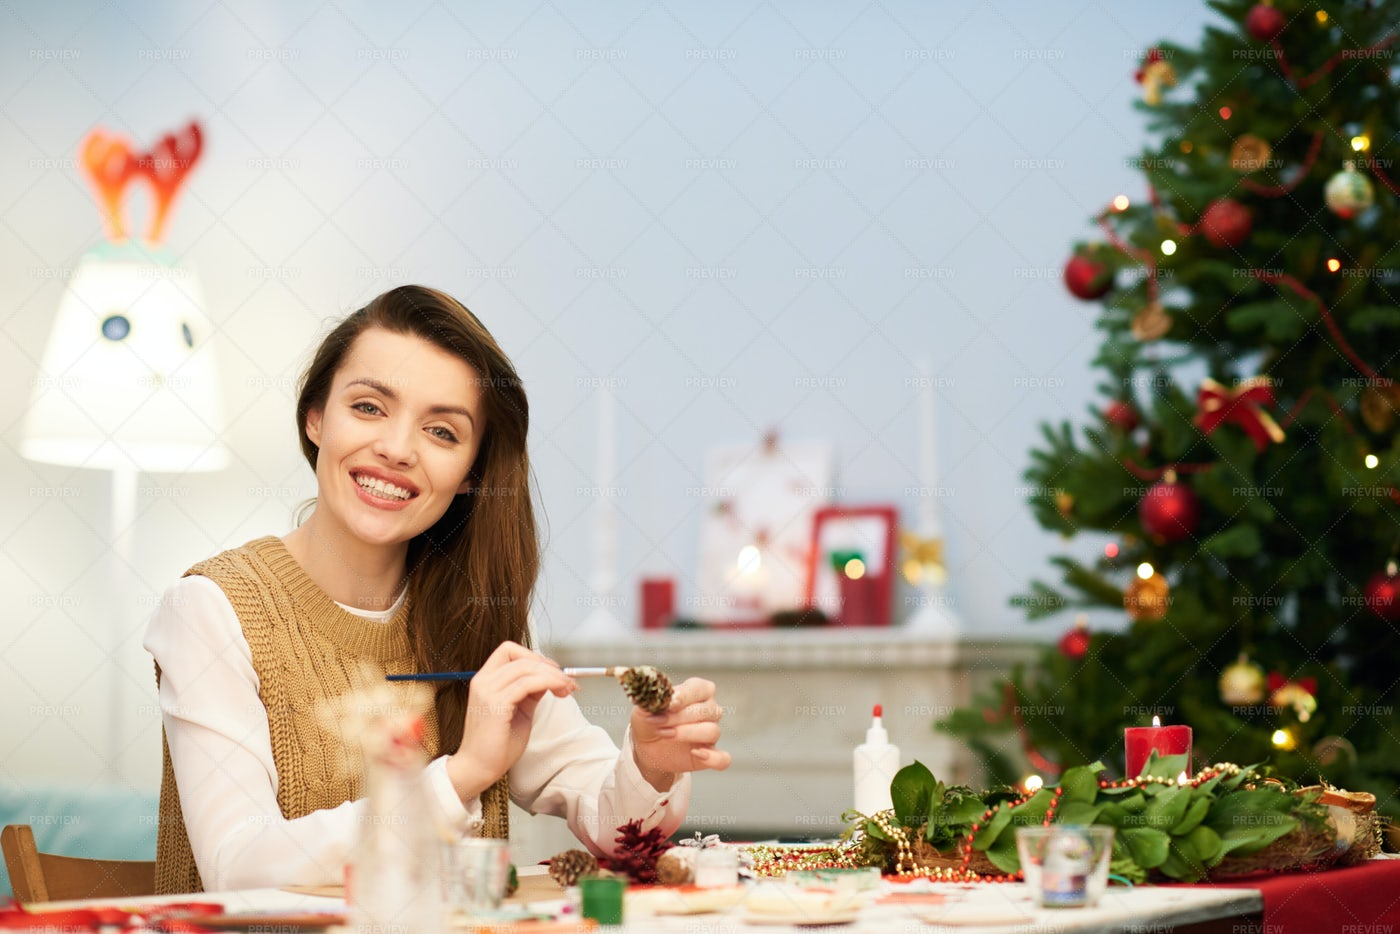 Attractive Woman Making Christmas...: Stock Photos